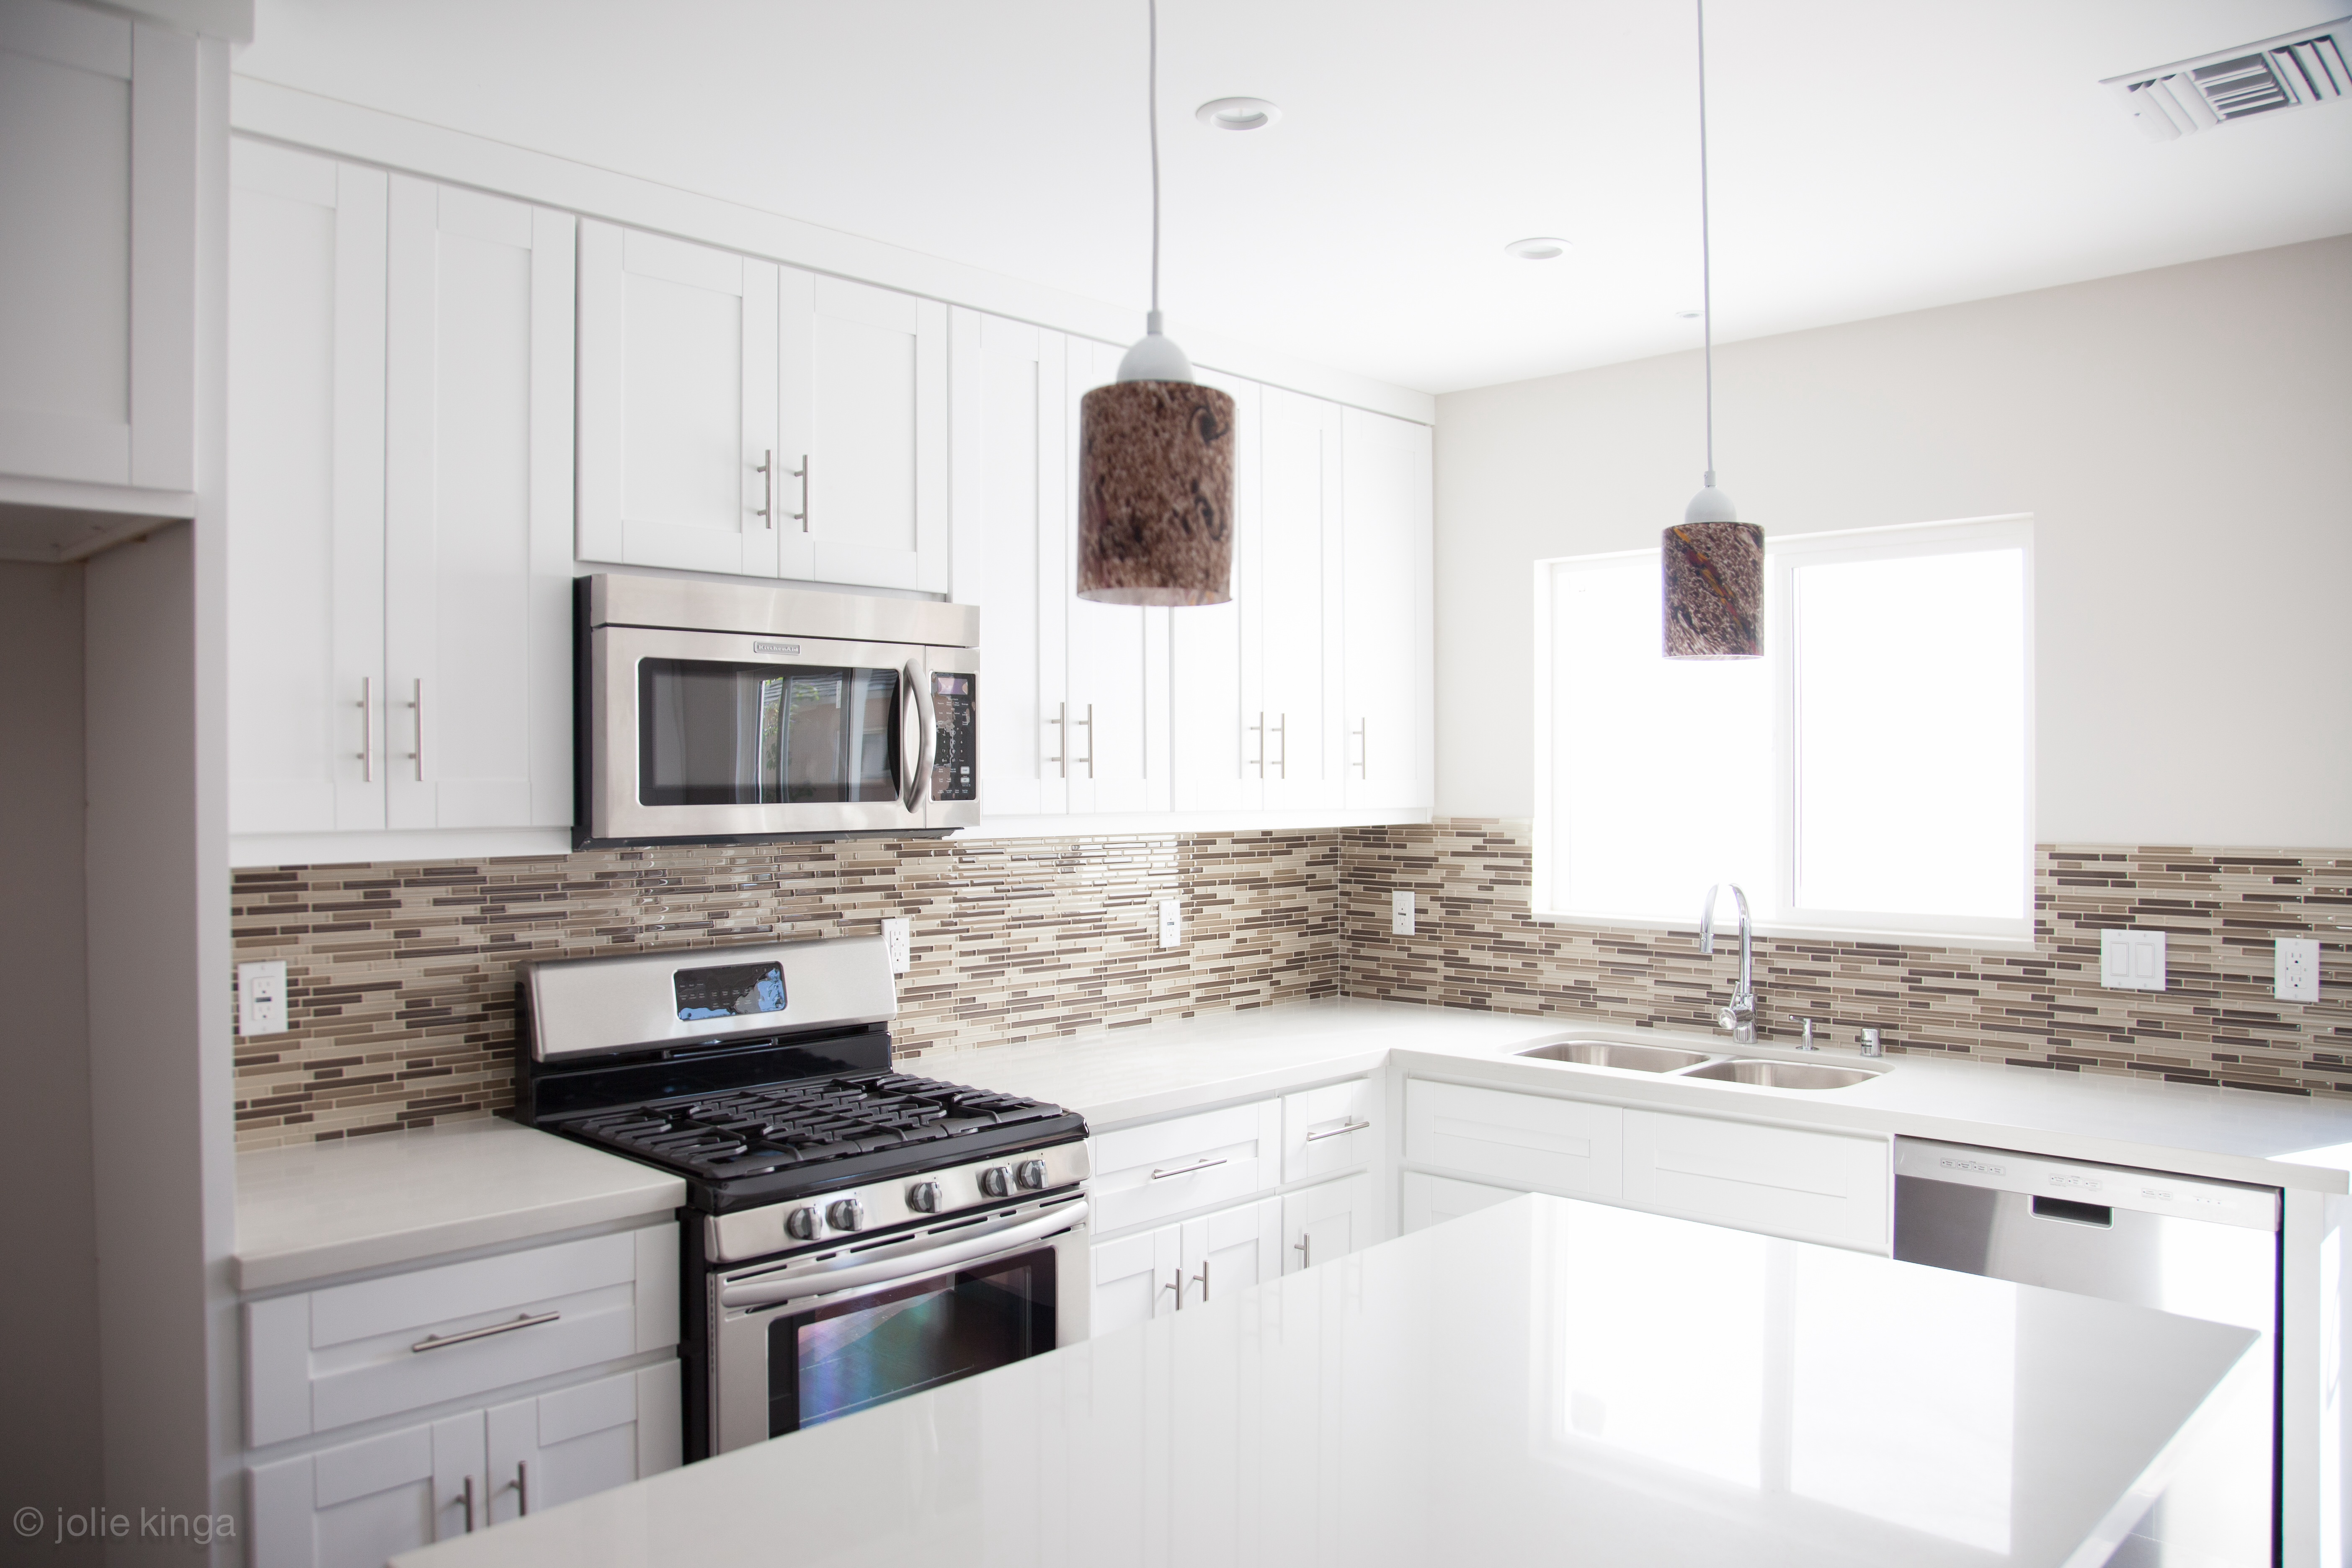 kitchen remodeling what to expect kitchen remodels Minor Kitchen Remodels Consider Spending Less Than Average